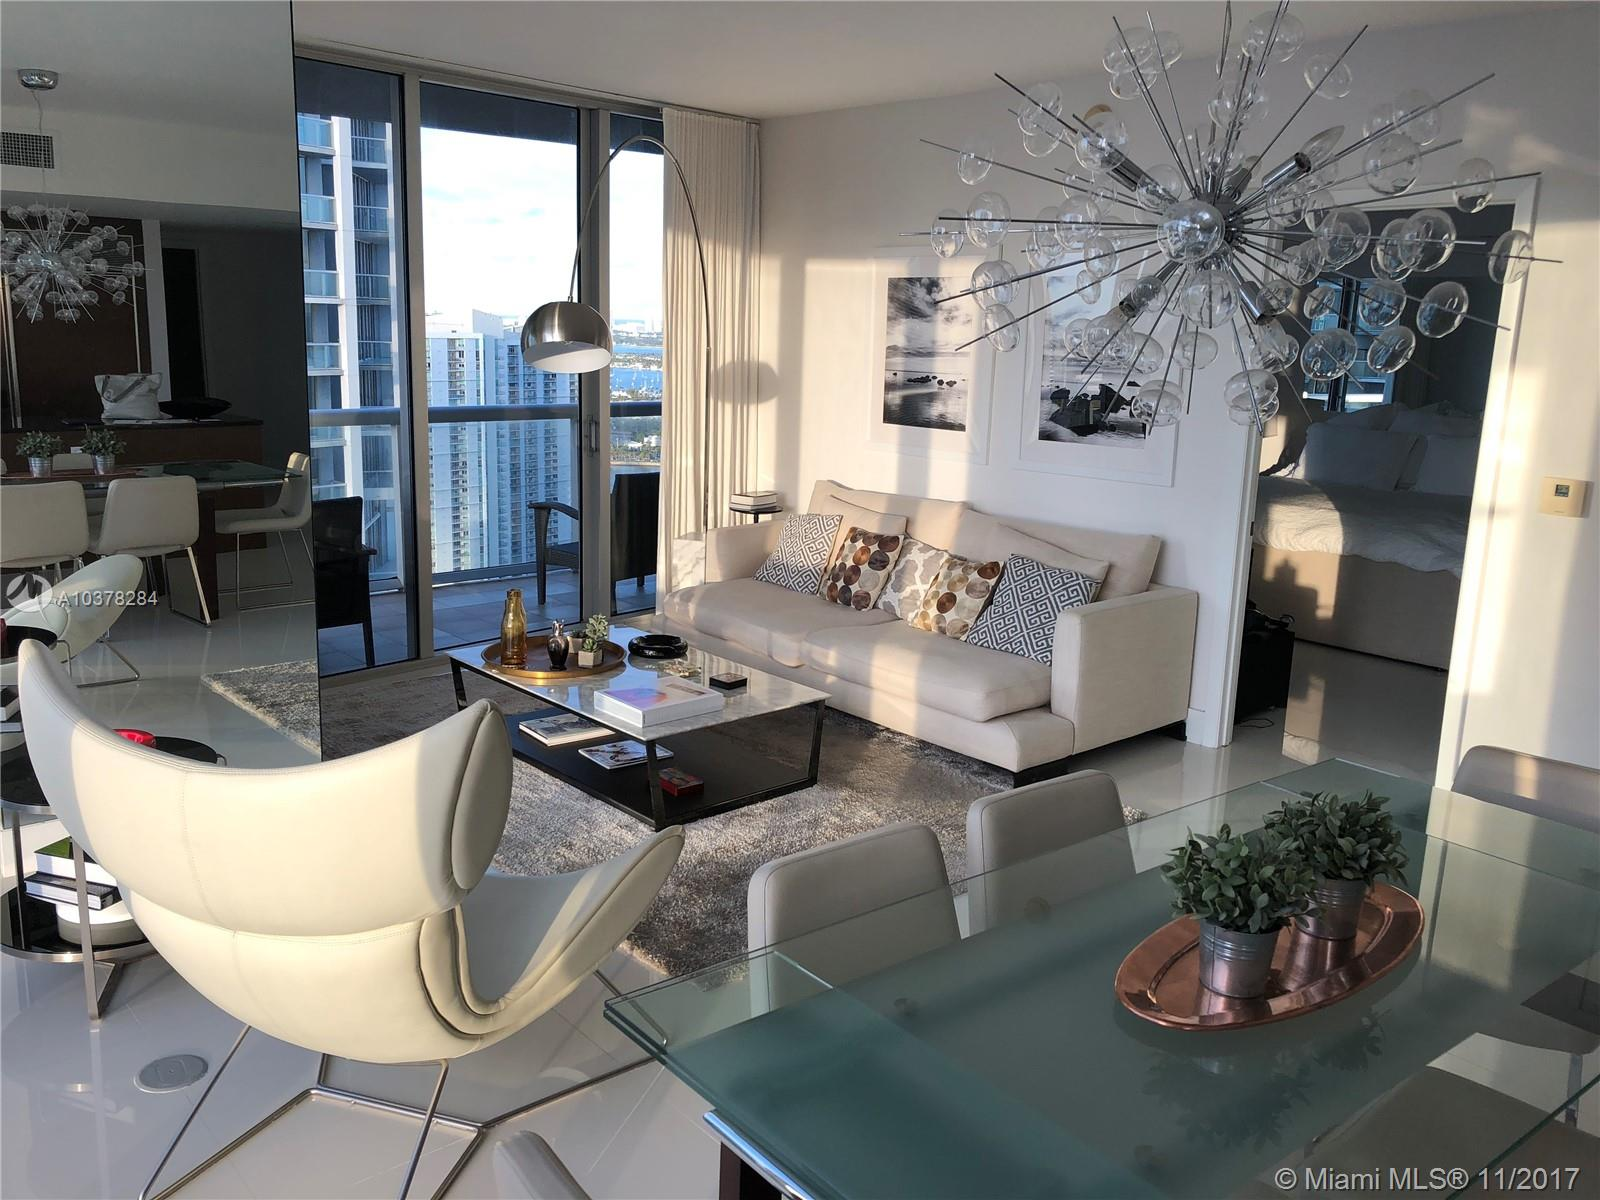 Icon Brickell 2 #4510 - 495 Brickell Ave #4510, Miami, FL 33131